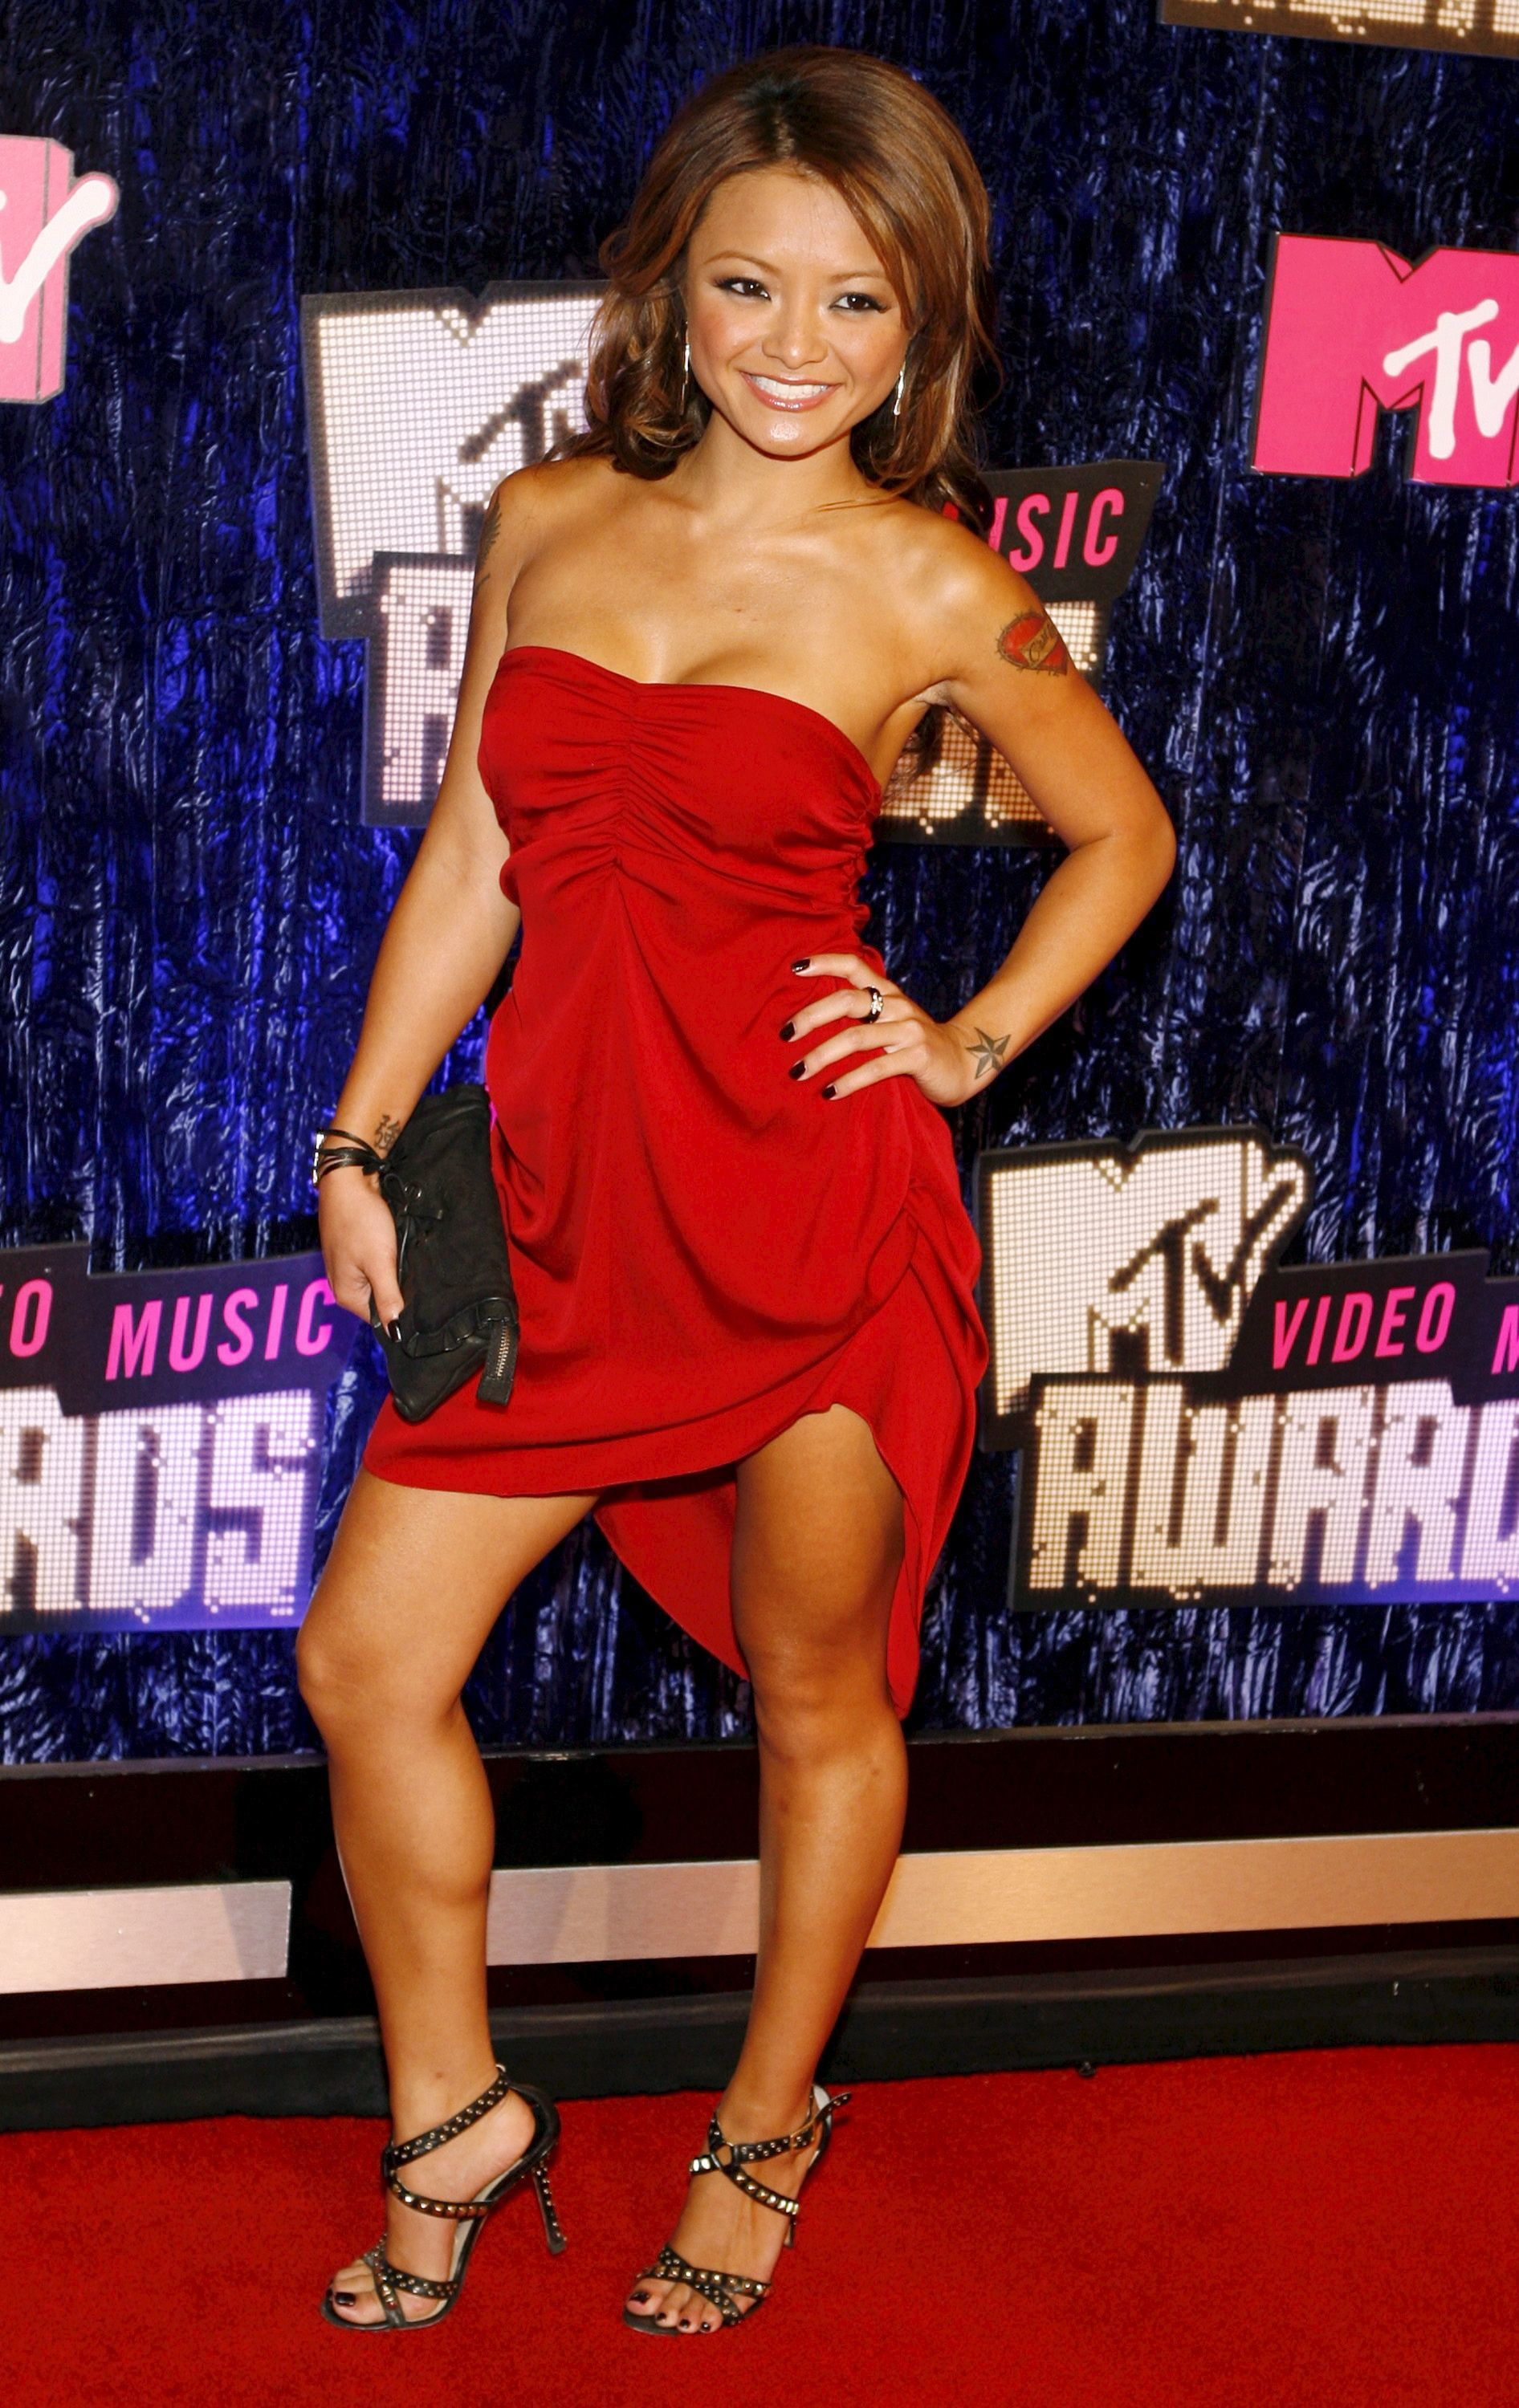 Tila Tequila  attends the 2007 MTV Video Music Awards at the Palms Hotel and Casino in Las Vegas on Sept. 9, 2007.